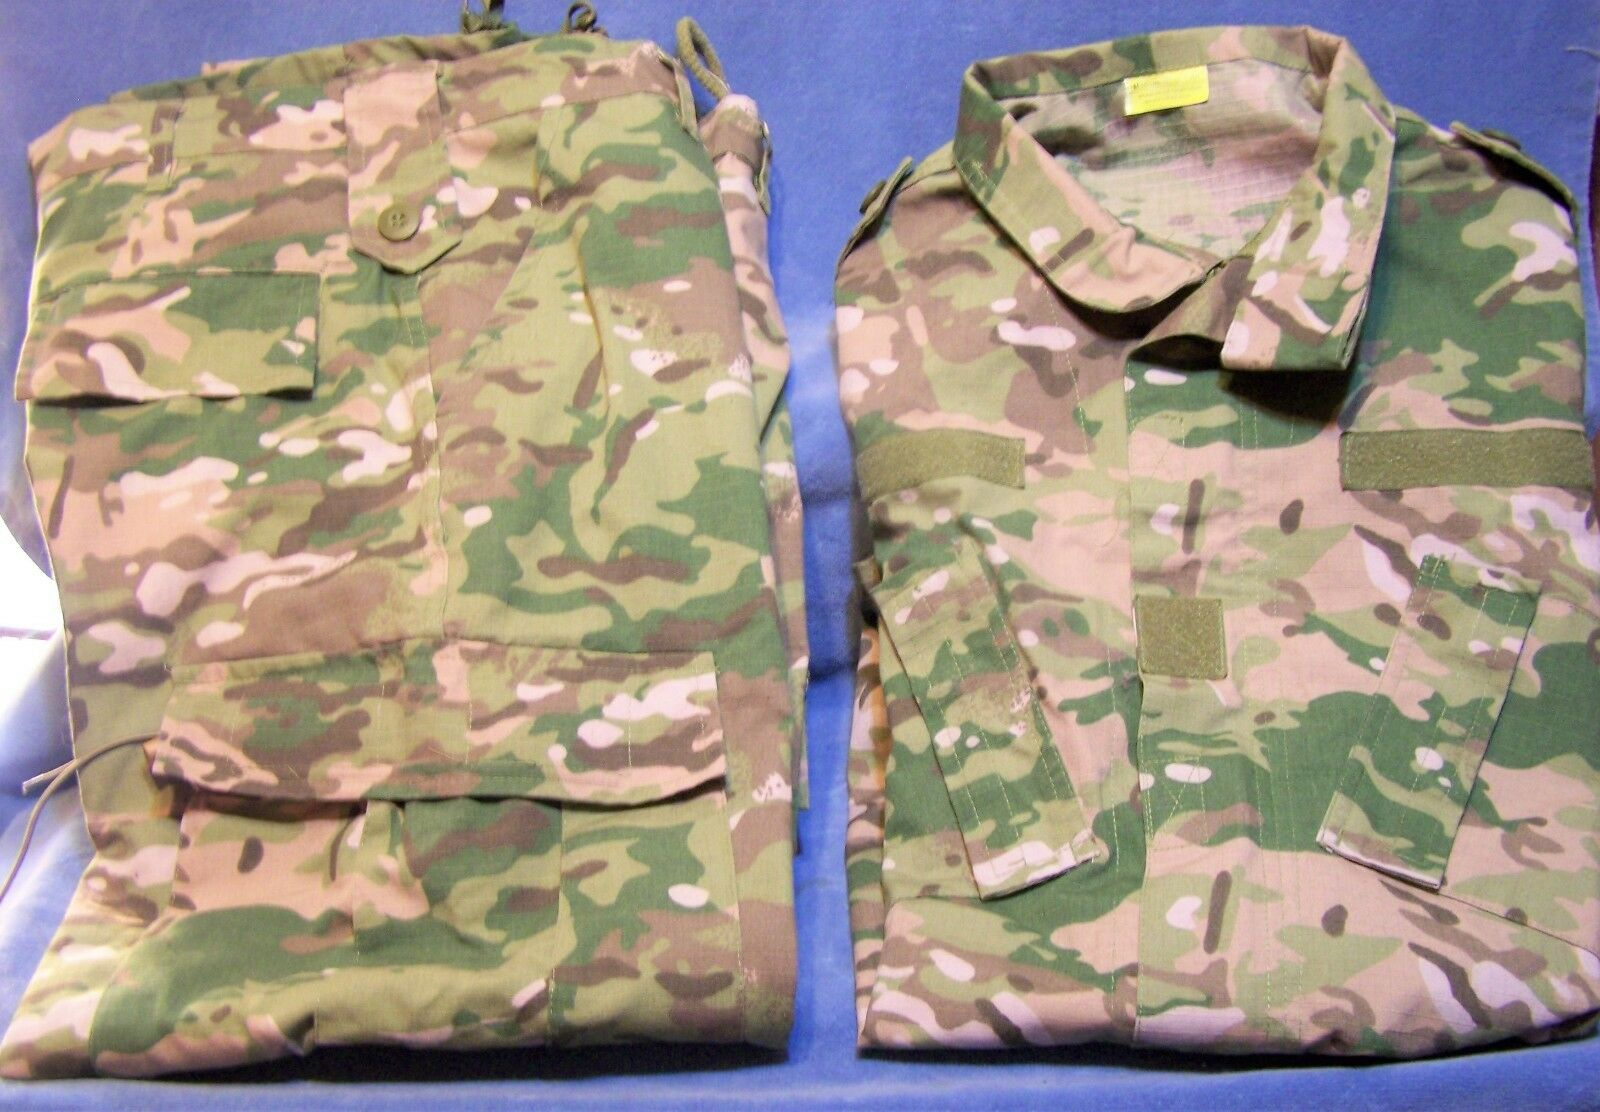 Camouflage Tactical Military Combat Uniform  Pants&Shirt Size Medium-Regular  discounts and more